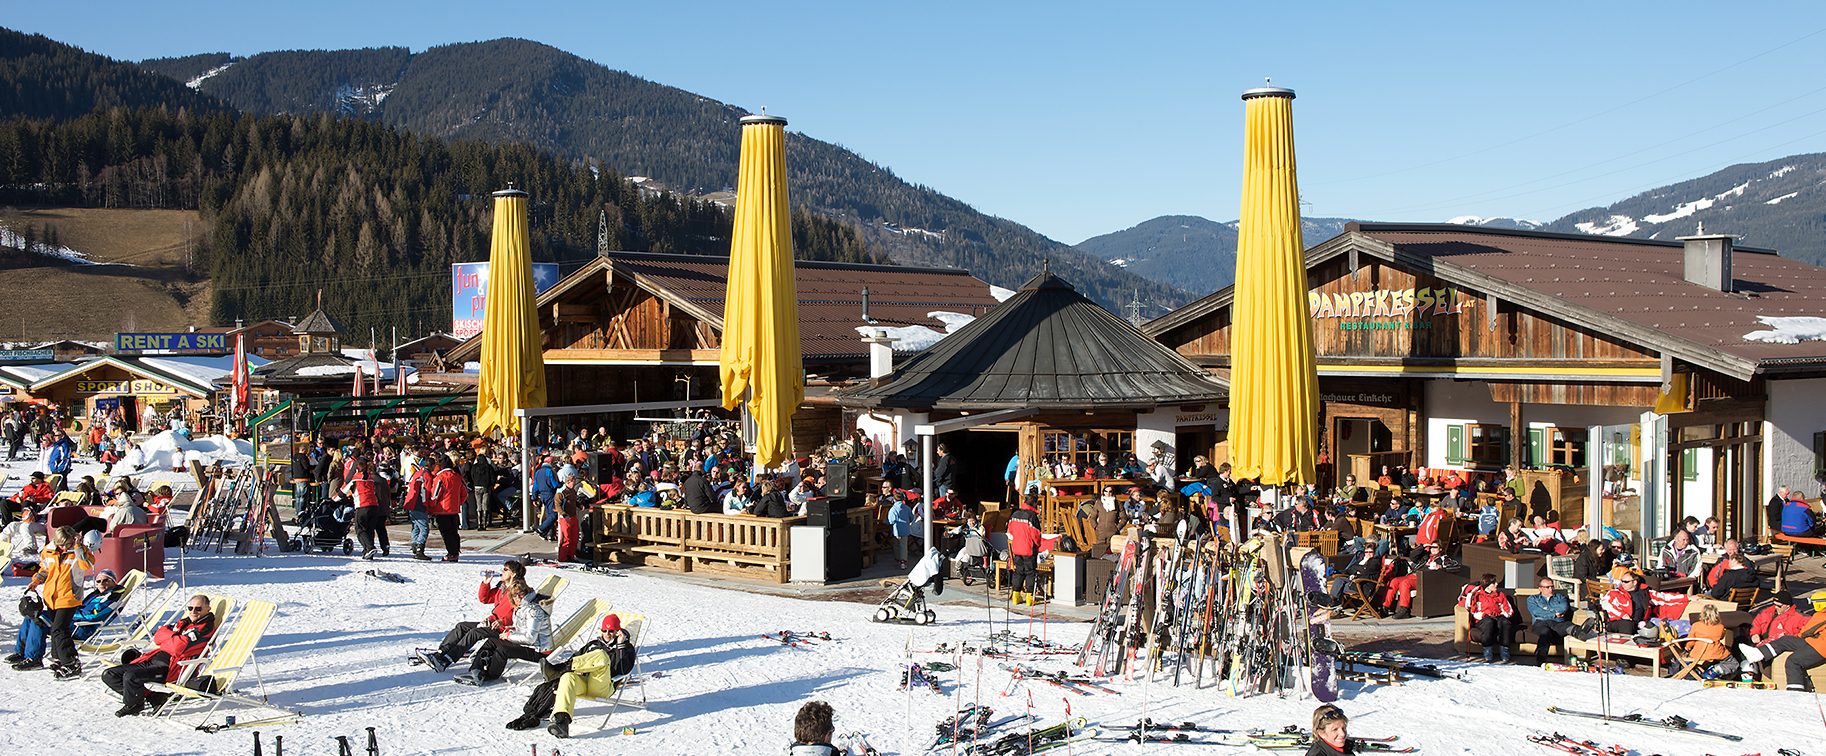 Best Practice - From a sun patio to an après ski restaurant at the ...